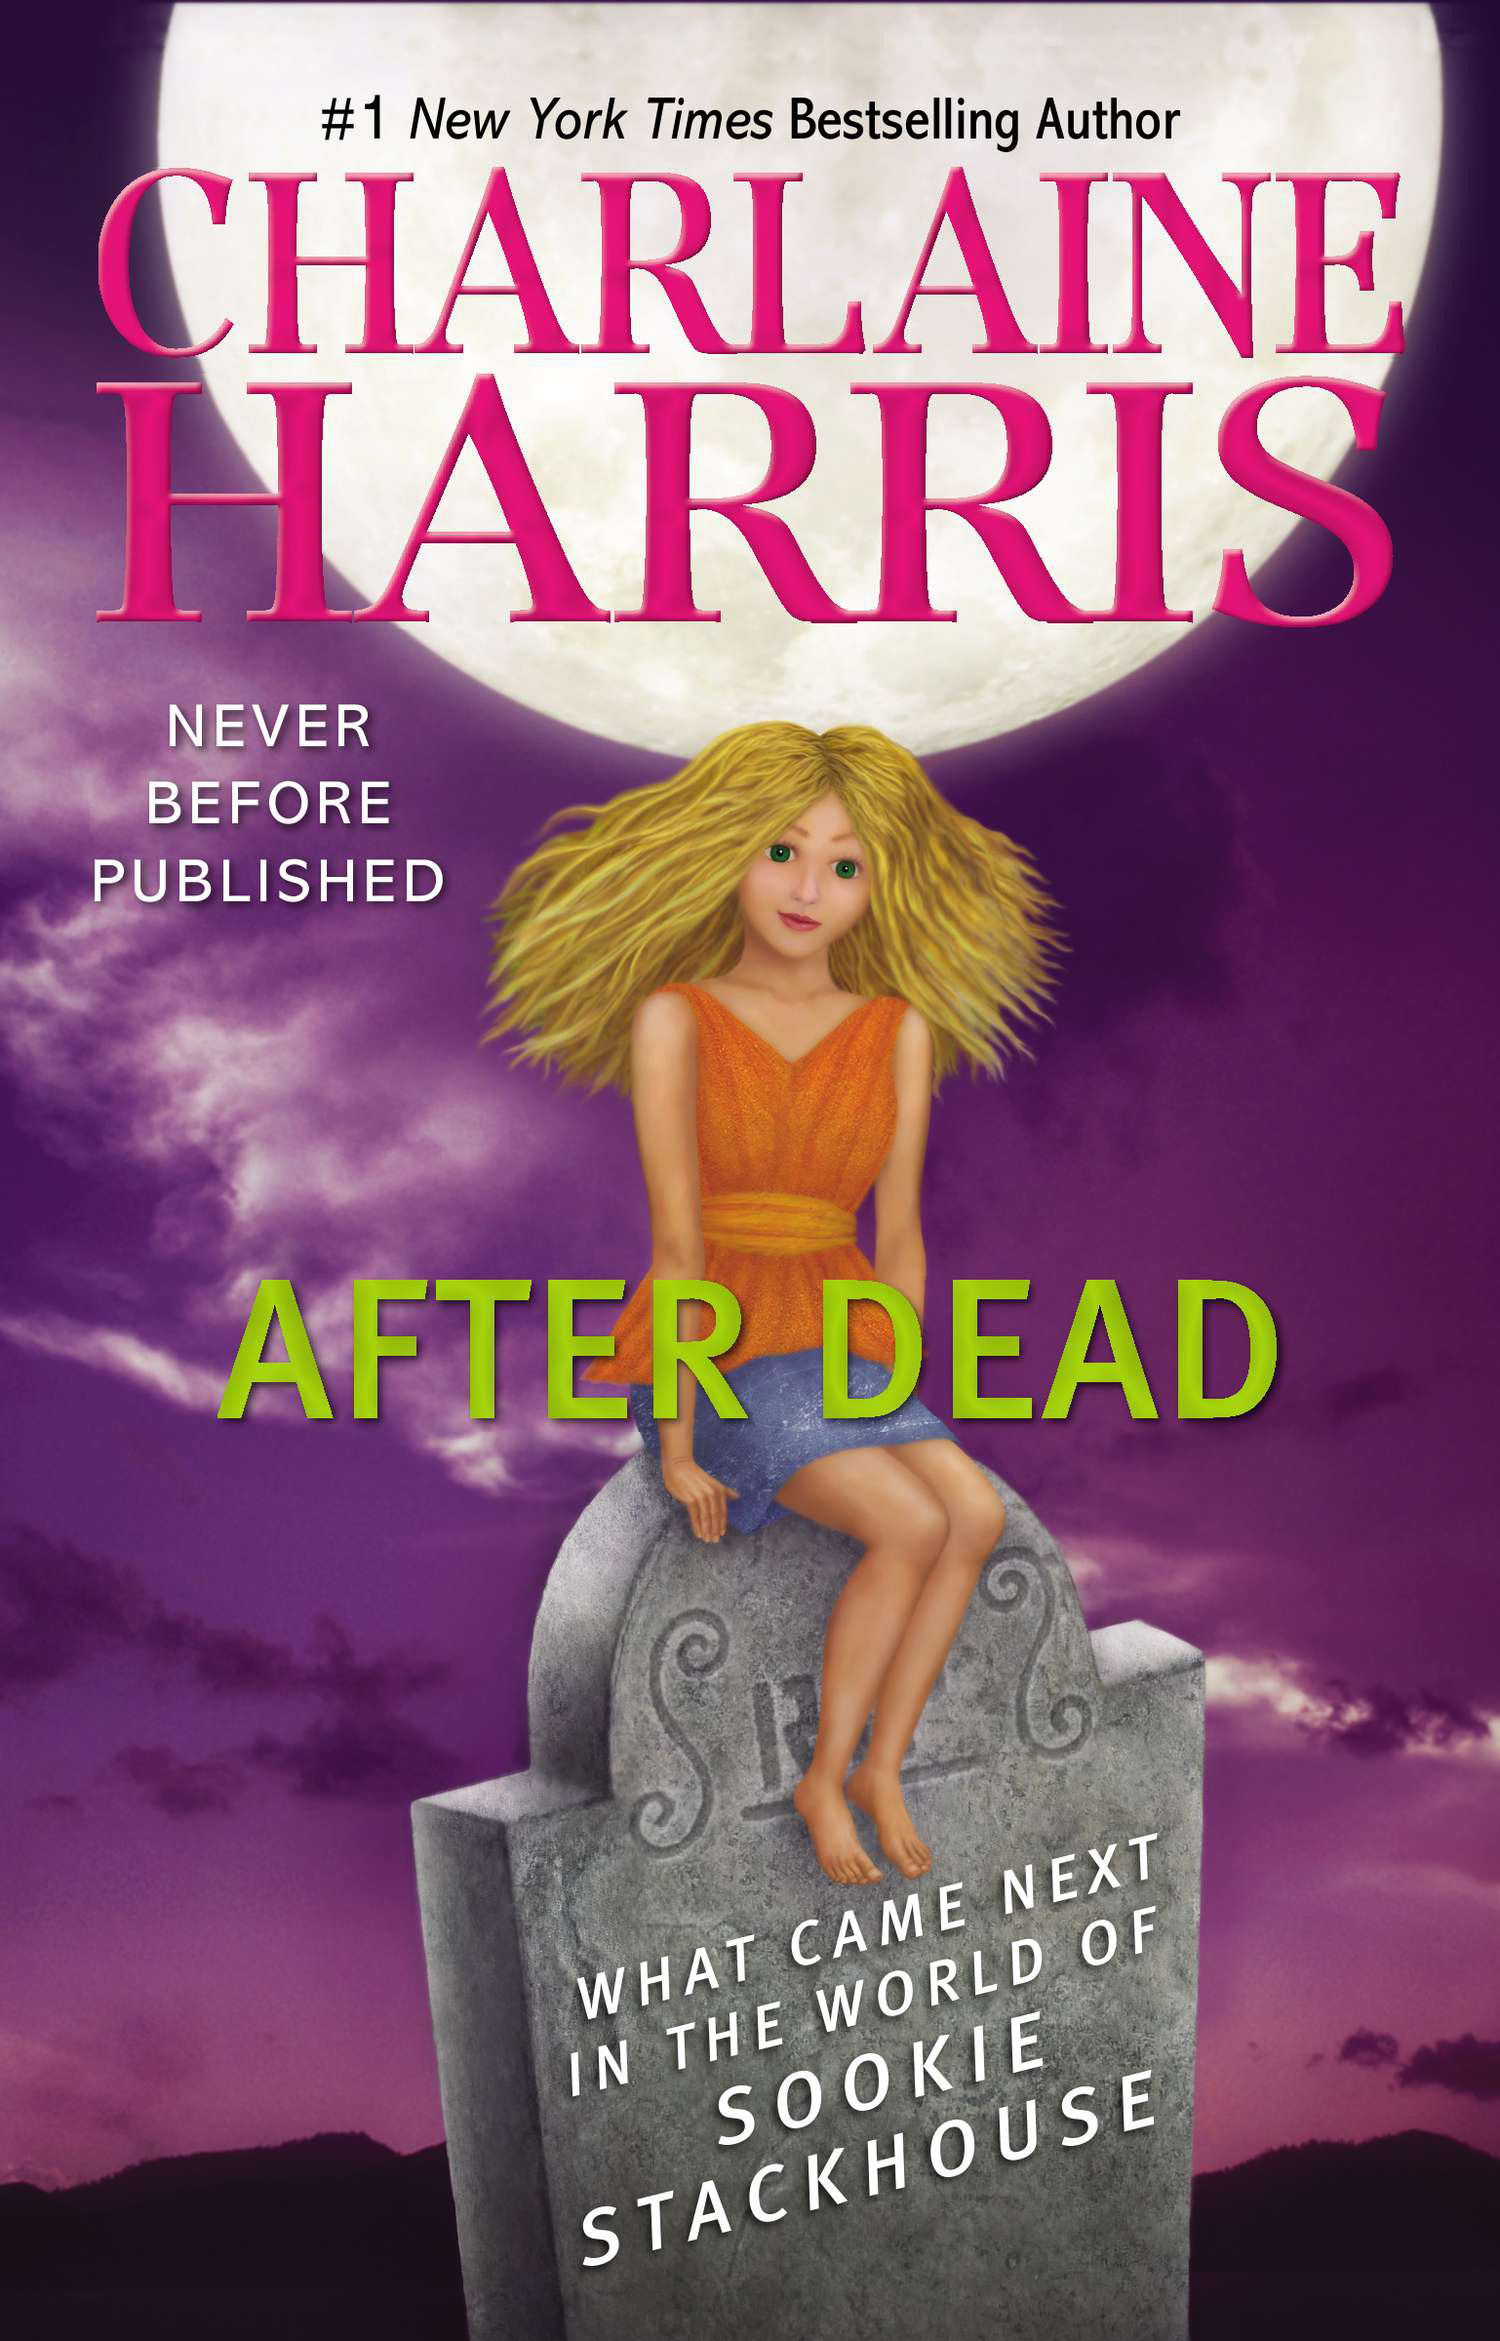 After Dead What Came Next in the World of Sookie Stackhouse